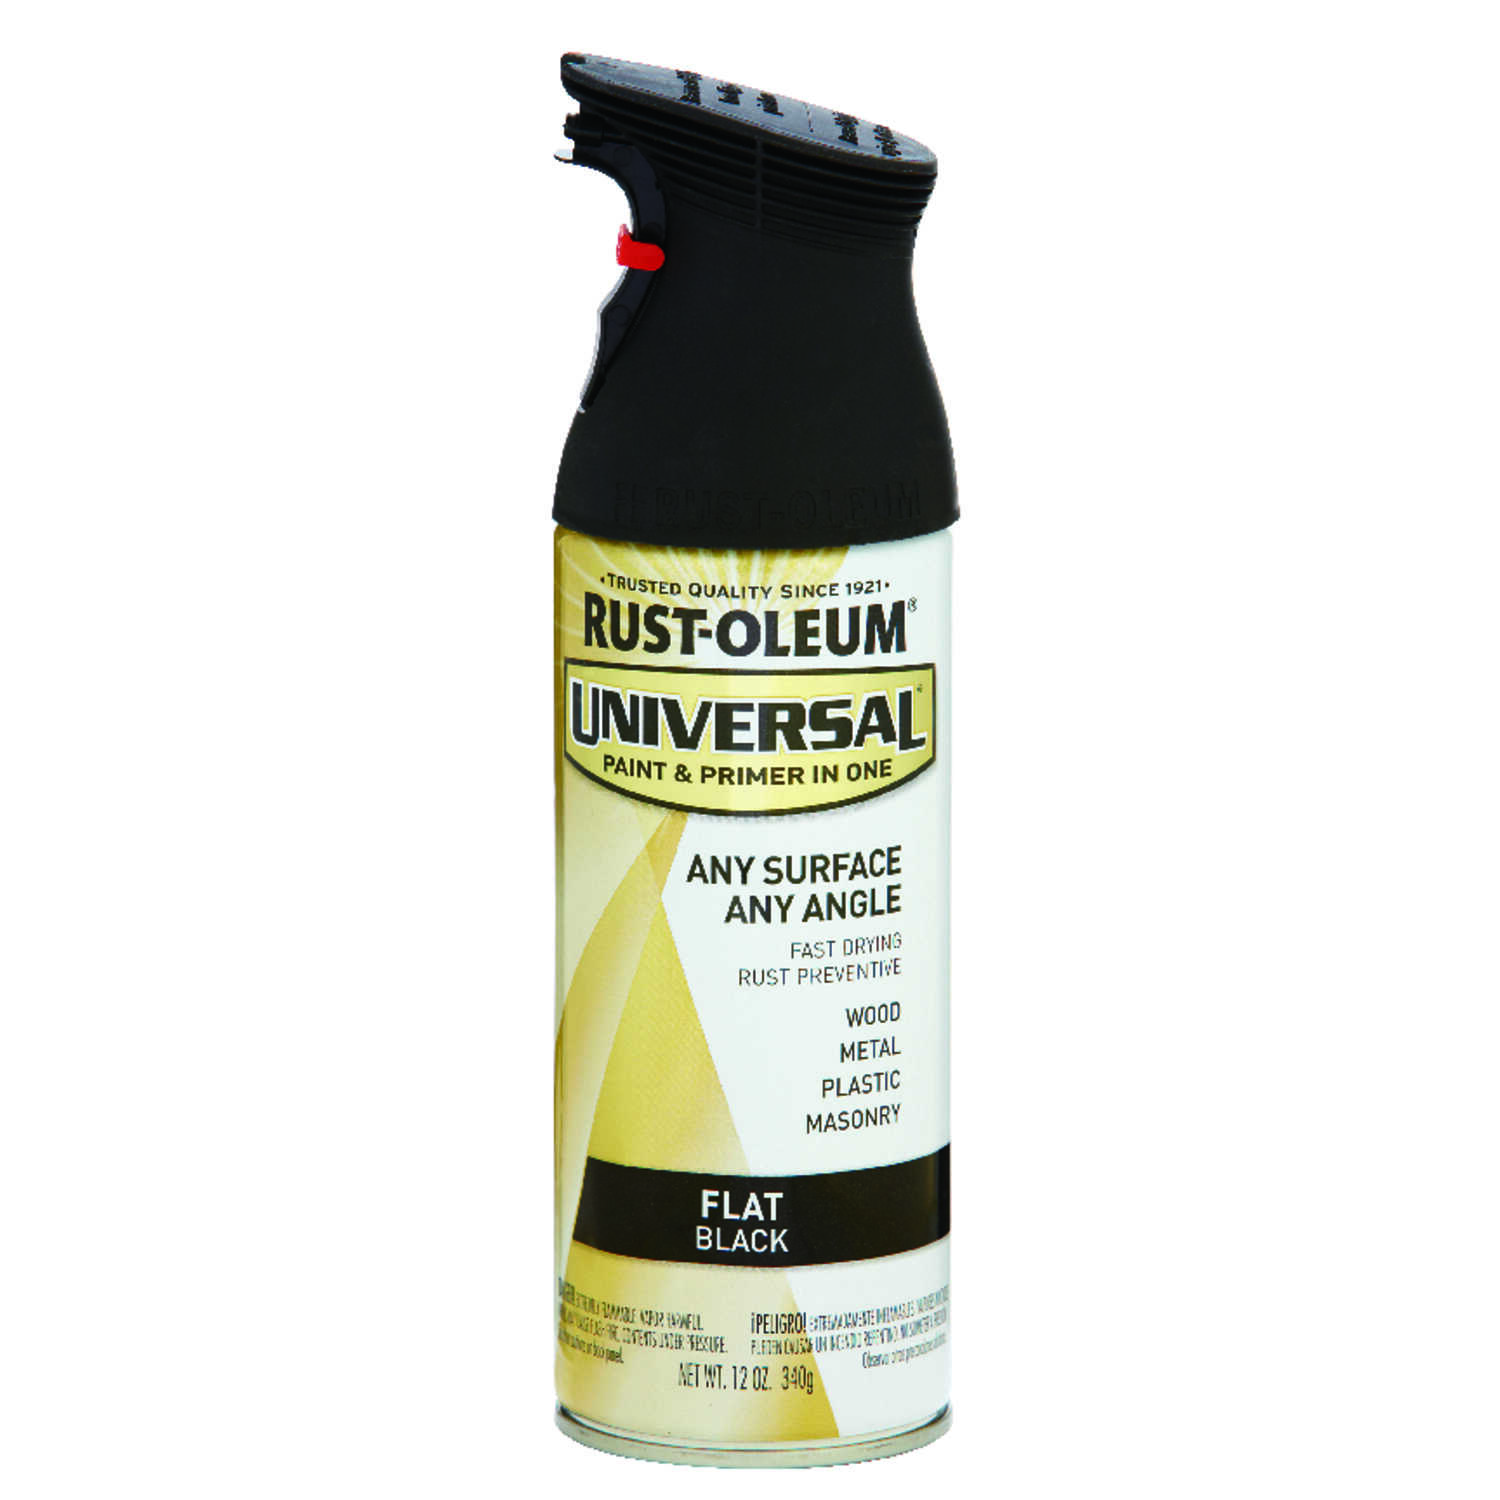 Rust-Oleum  Universal Paint & Primer in One  Flat  Black  Spray Paint  12 oz.